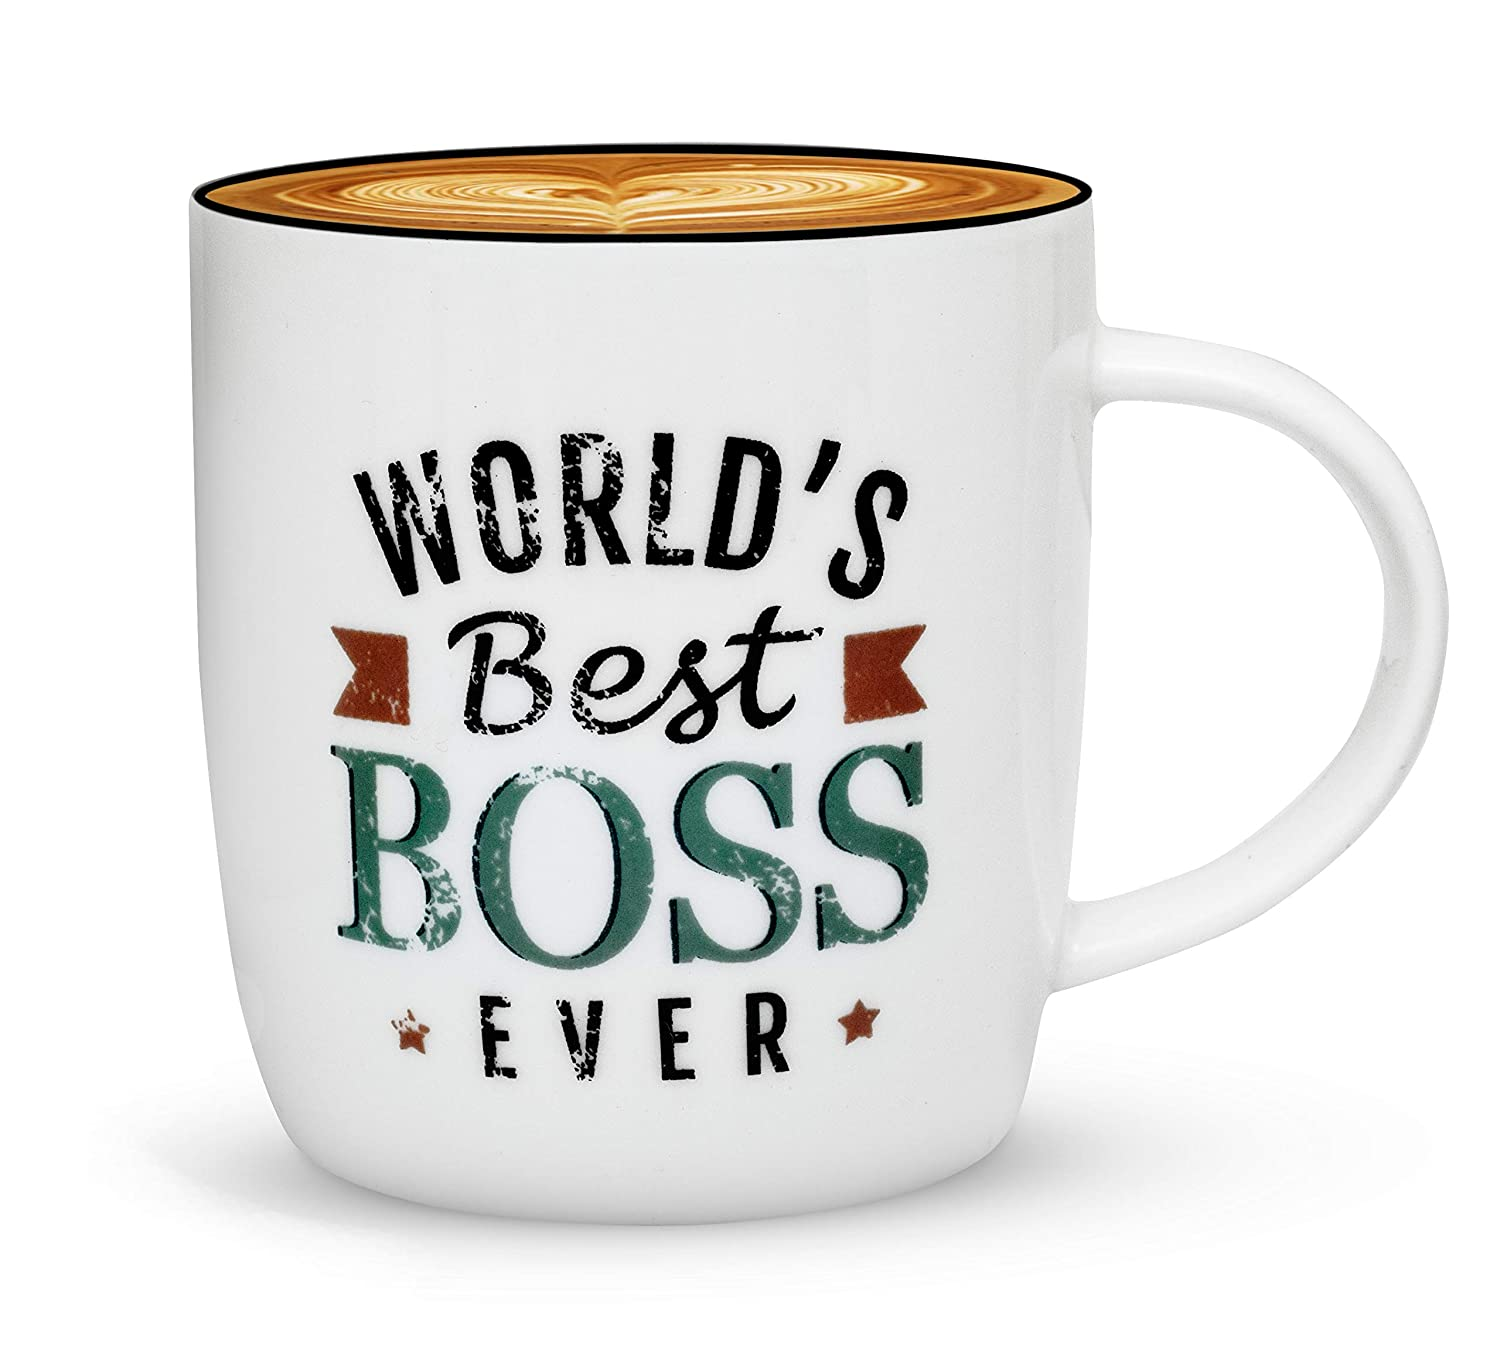 Buy Gifffted The Worlds Best Boss Ever Coffee Mug Bosses Day Gifts Ideas Christmas Present For My Greatest Boss Male Or Female Men Women Office Gift Mugs Birthday Leaving Vintage Cup 13